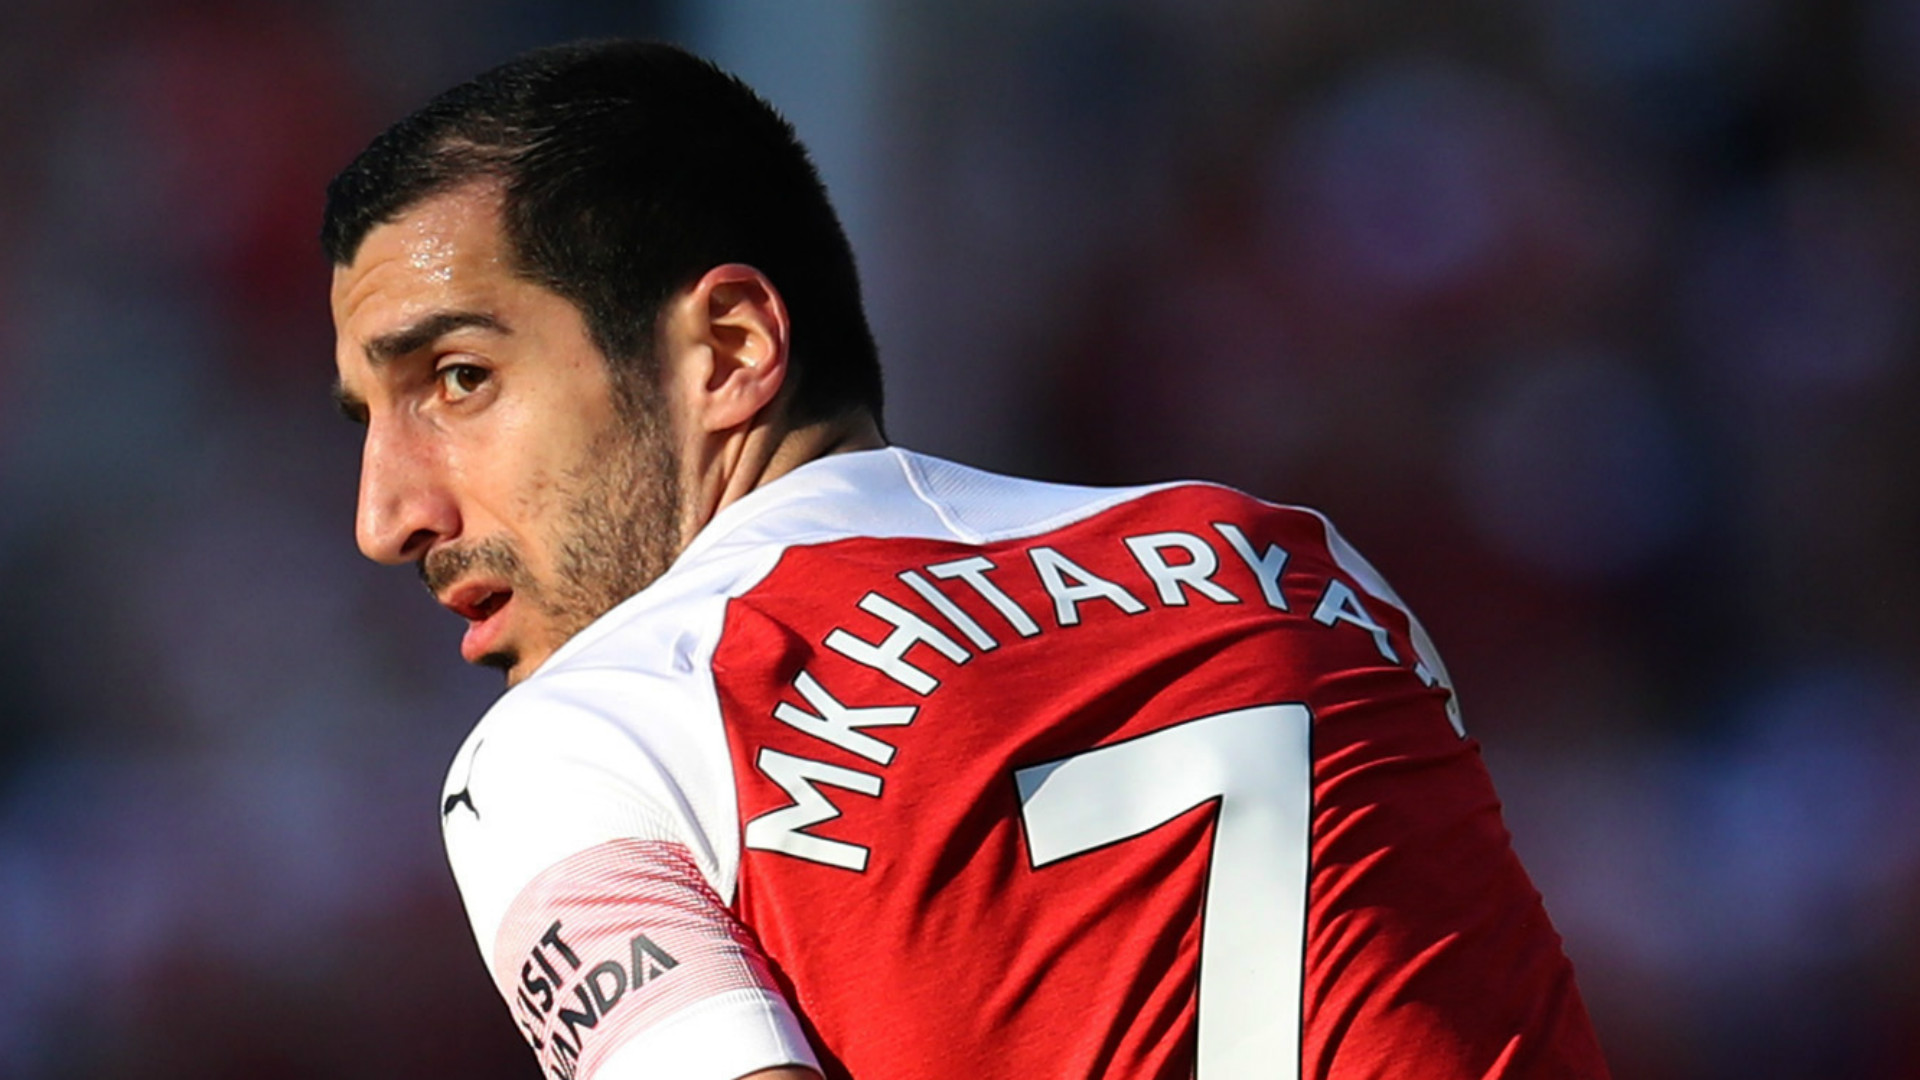 Henrikh-Mkhitaryan-pierde-final-europa-league-lavibrante